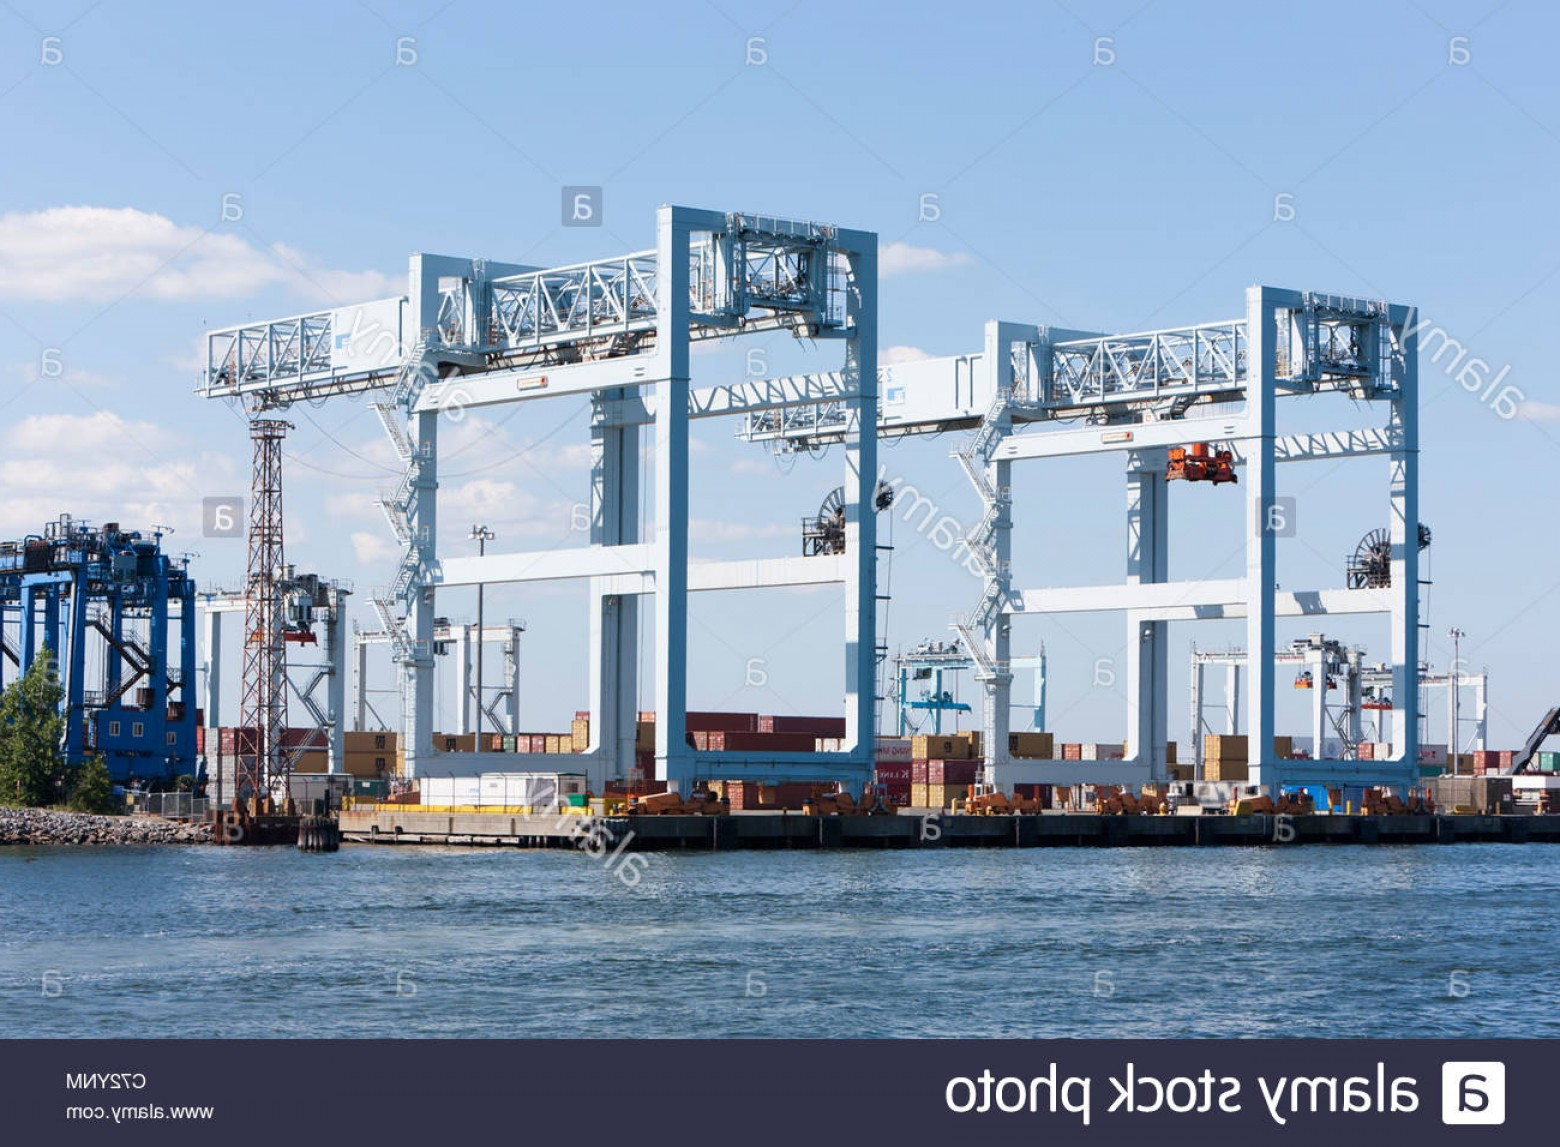 Massport Vector: Stock Photo Portainer Cranes And Of In The Massport Paul W Conley Container